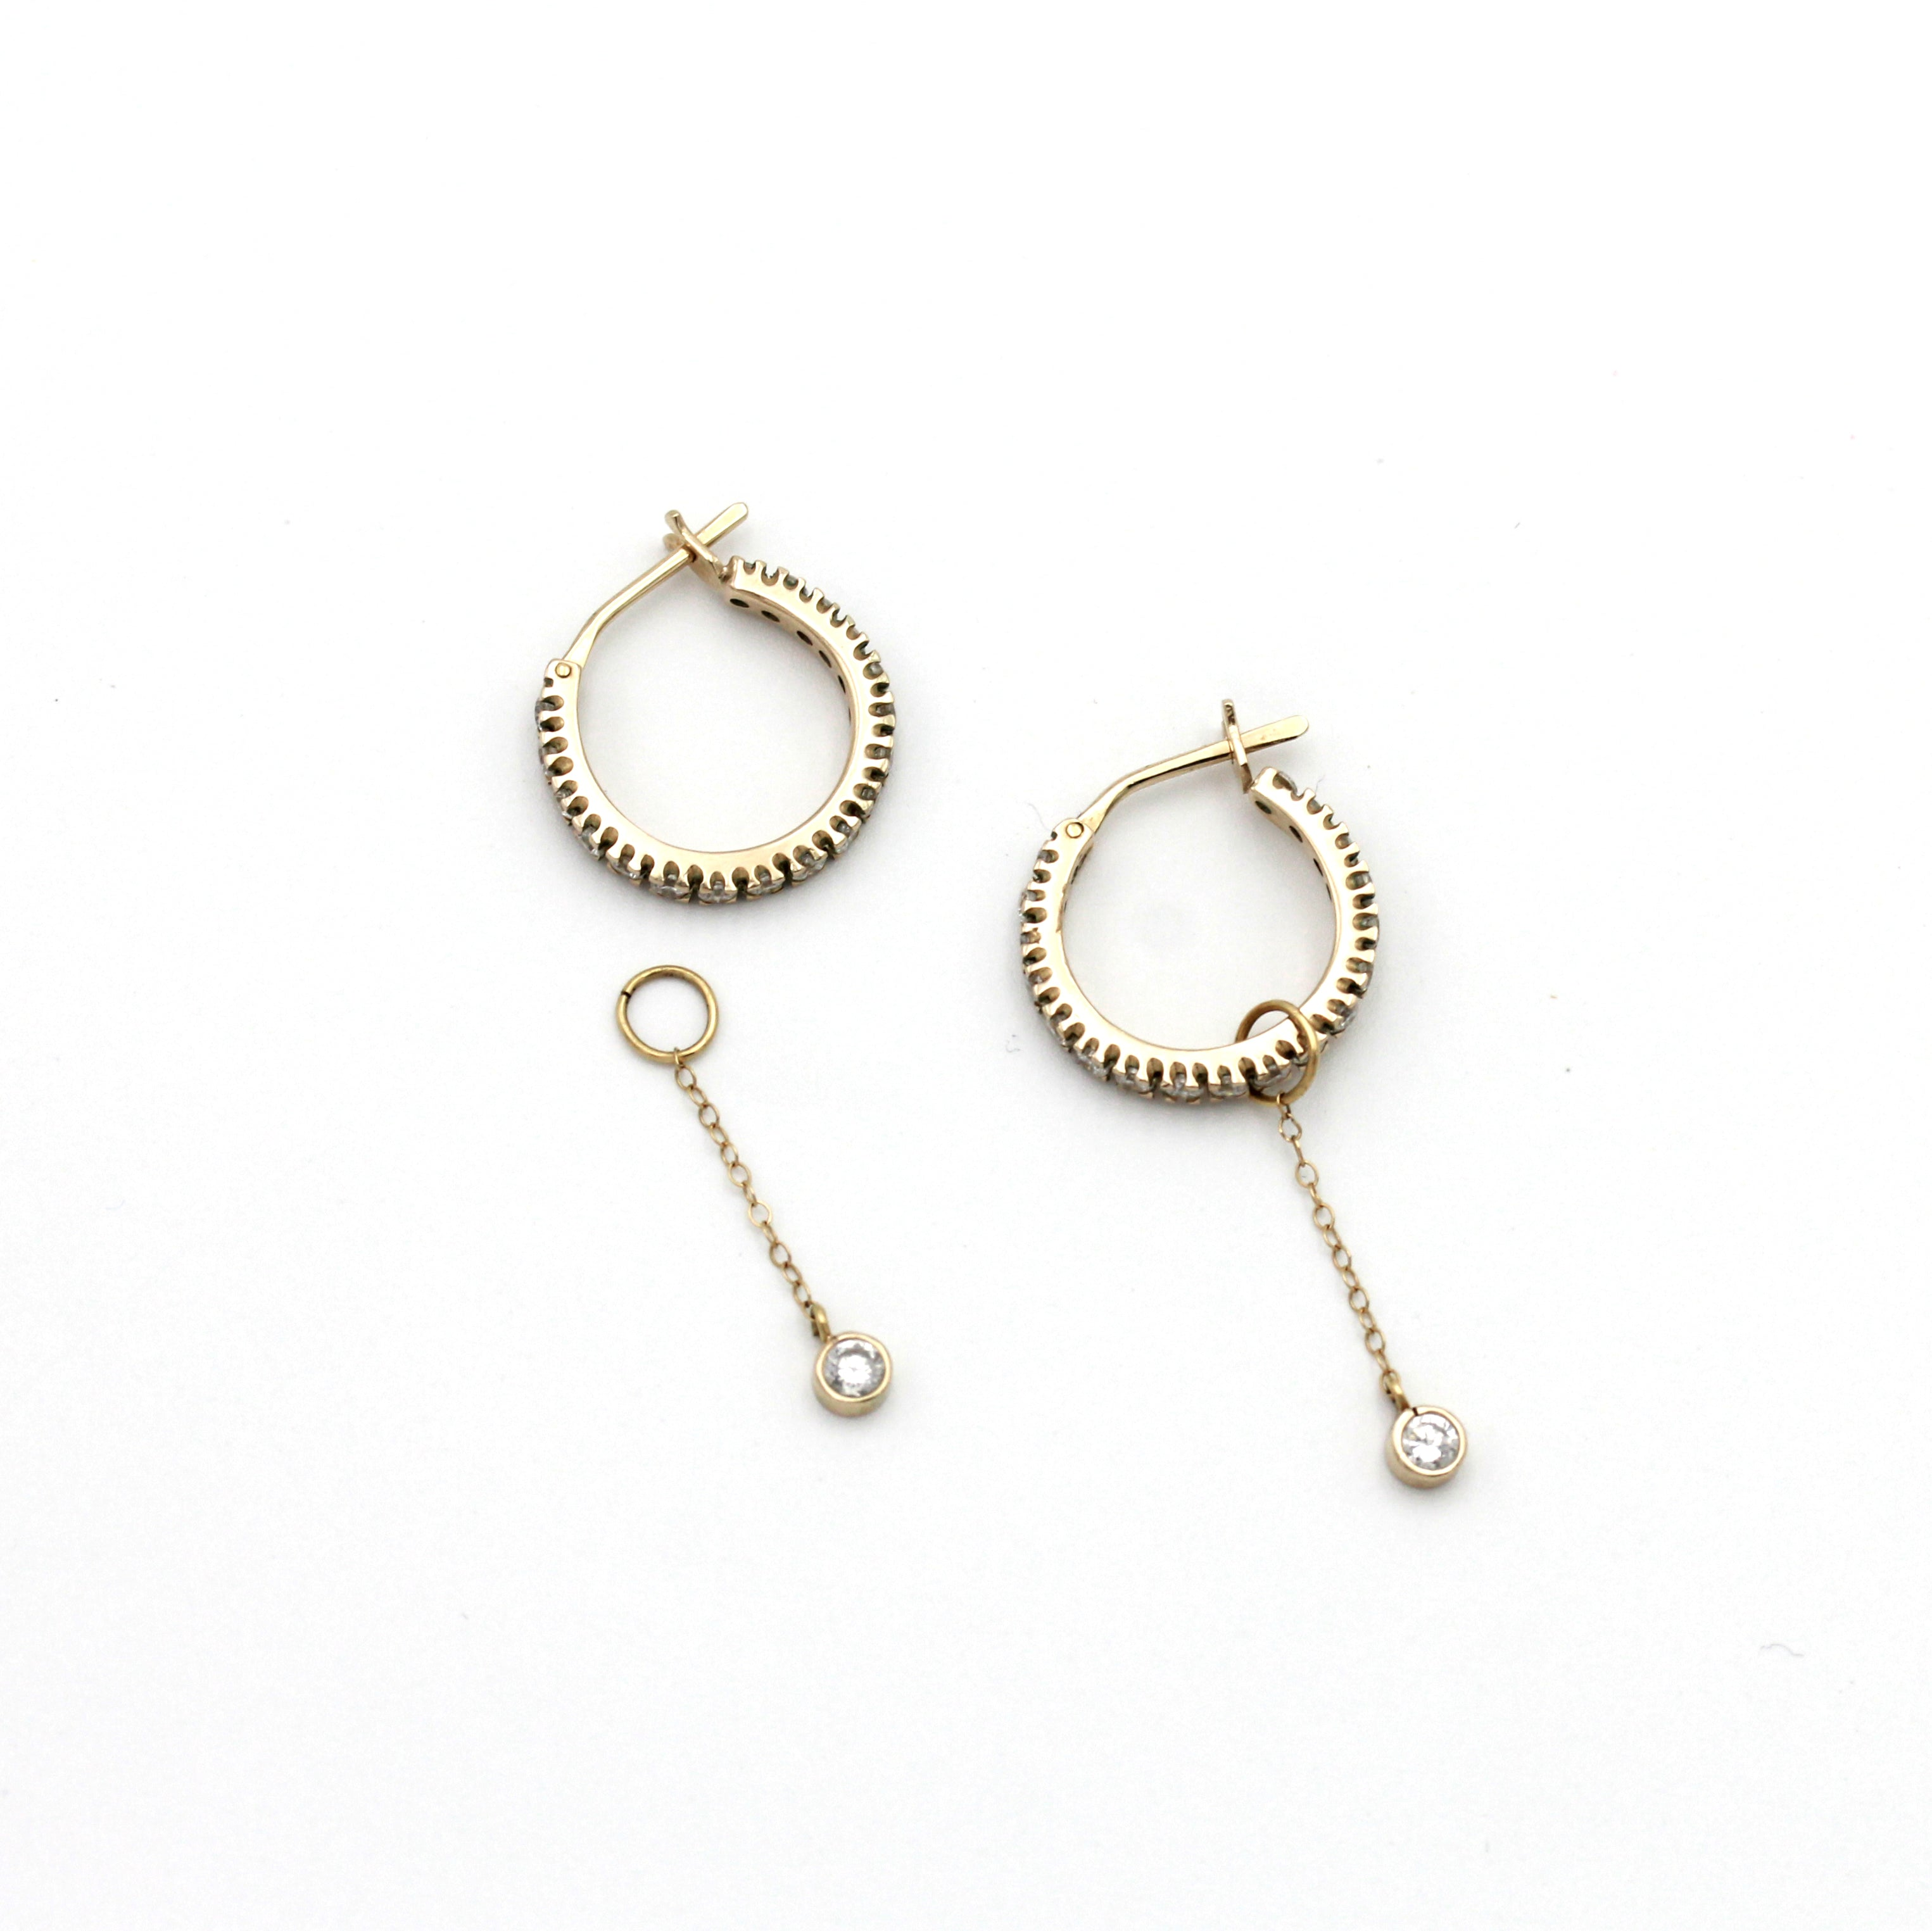 Gold and Natural Zircon Hoop Earrings with removable drop